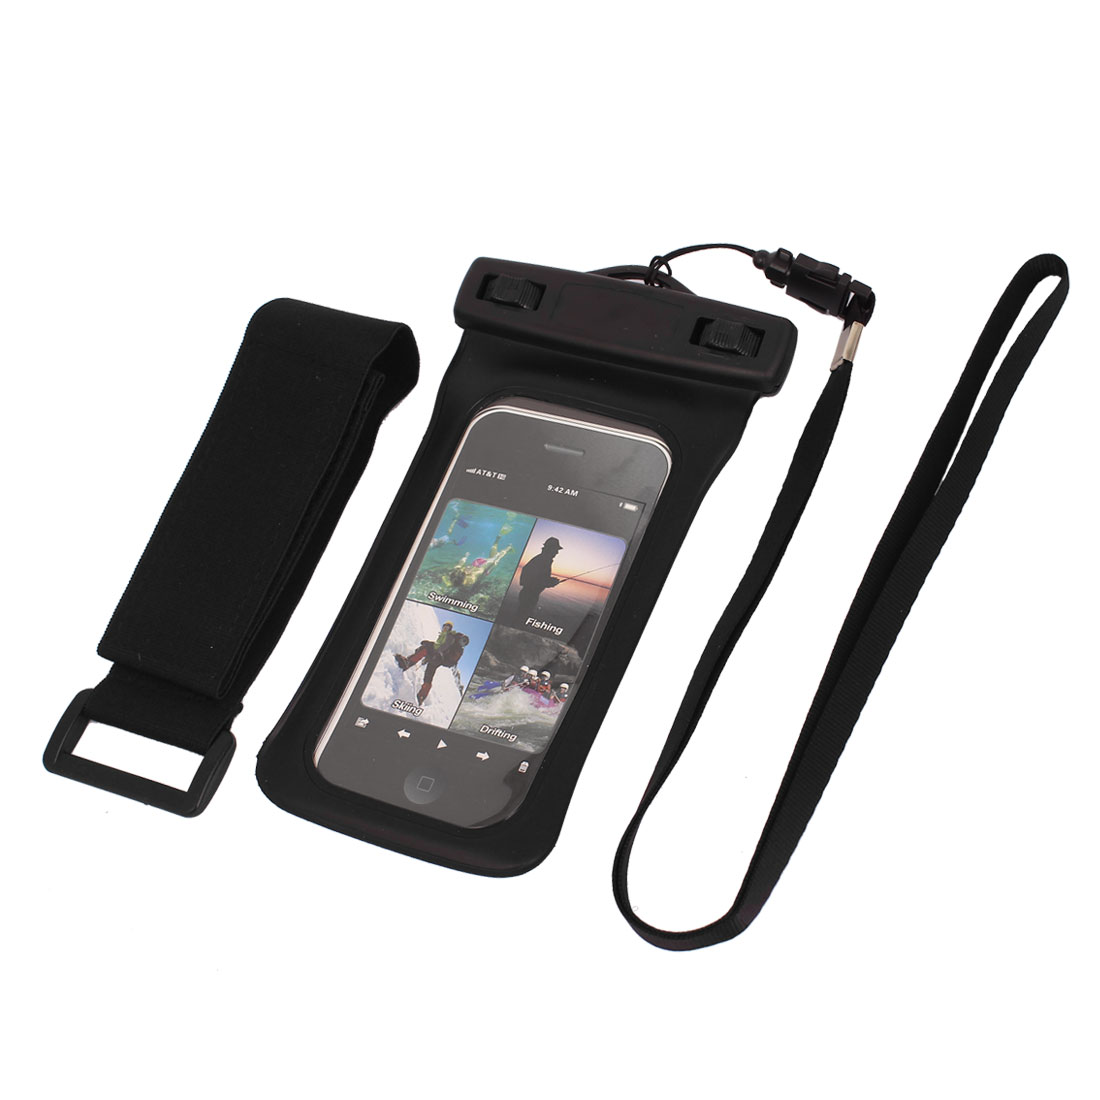 "Underwater Waterproof Case Dry Bag Cover Pouch Black + Strap for 4"" Cell Phone"